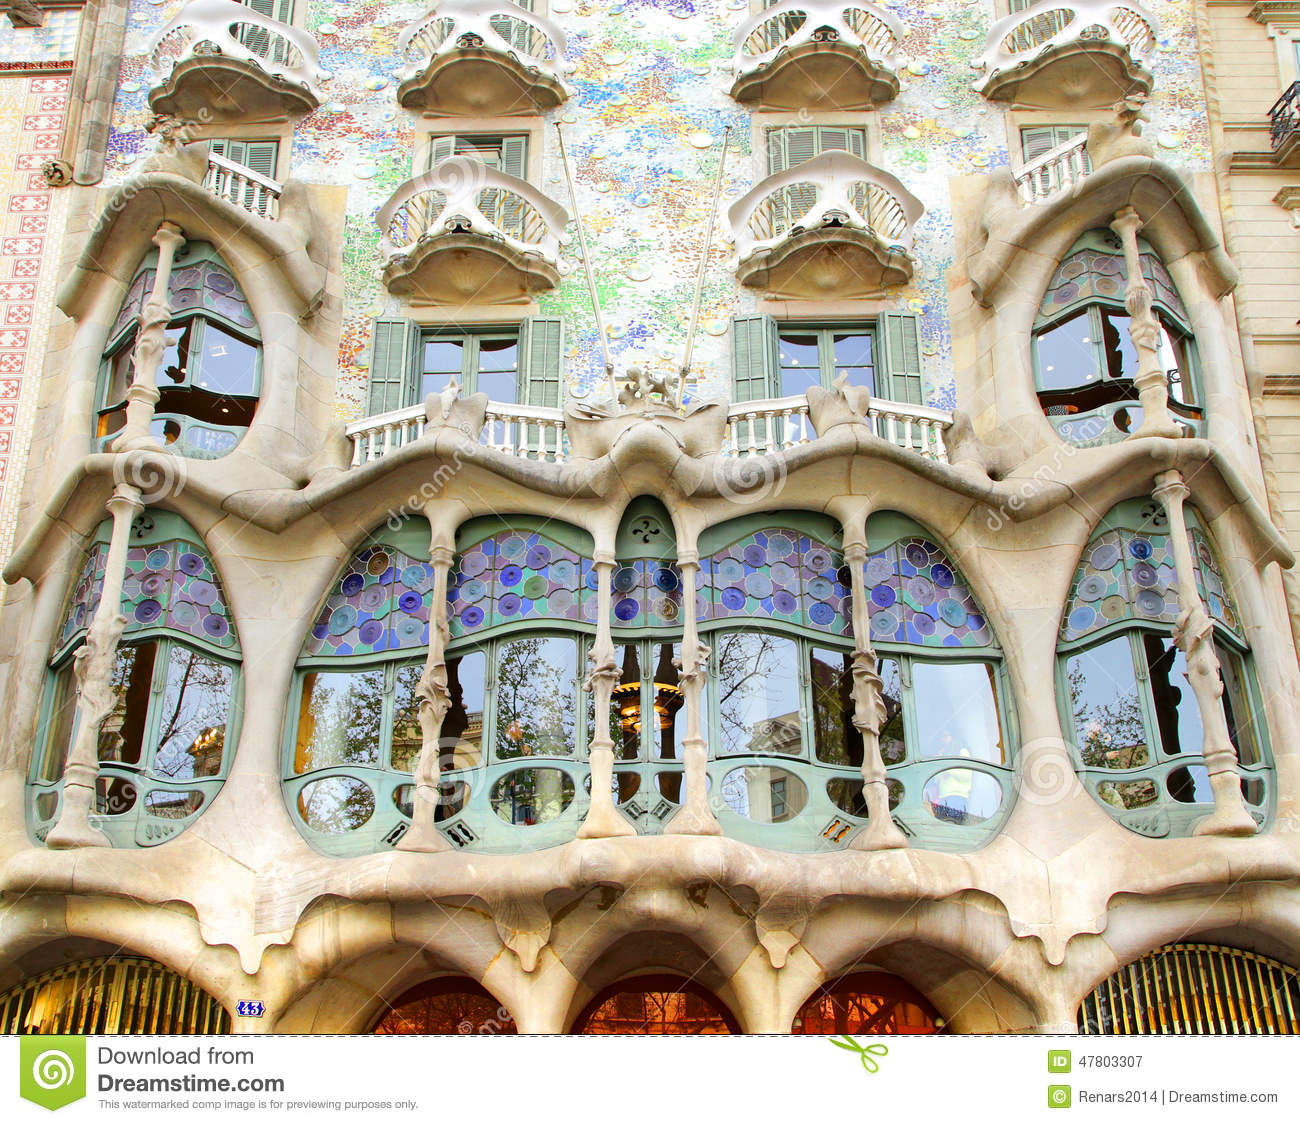 antoni gaudi essay Casa milà, one of barcelona's most famous modernistic building by antoni gaudí the house is on the unesco world heritage list, it is unique with its organic forms.